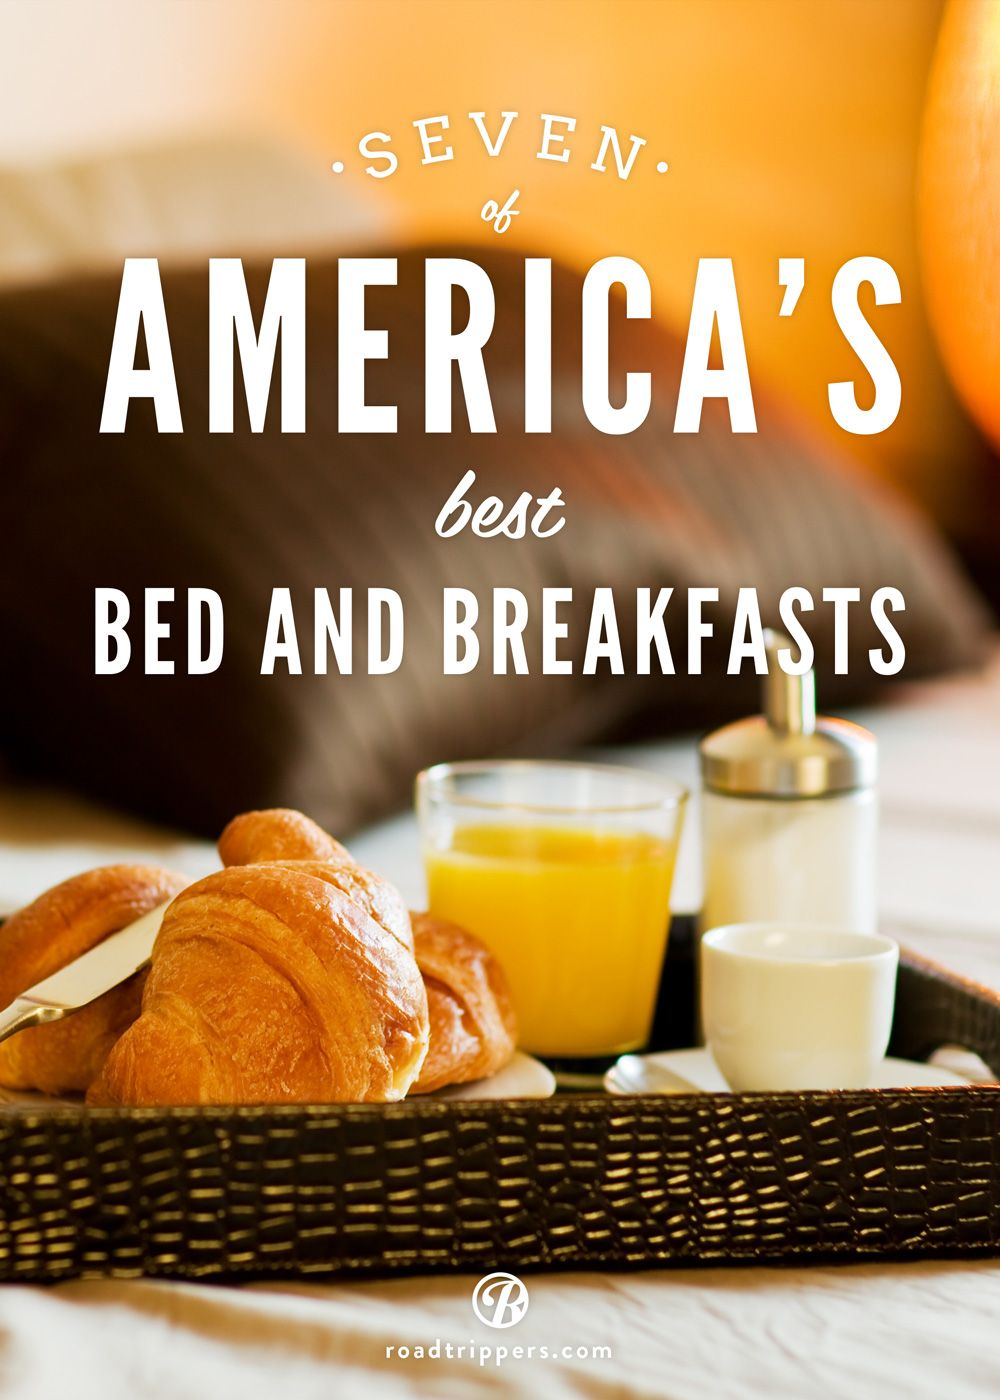 Good Morning! 7 of America's Best Bed and Breakfasts (With